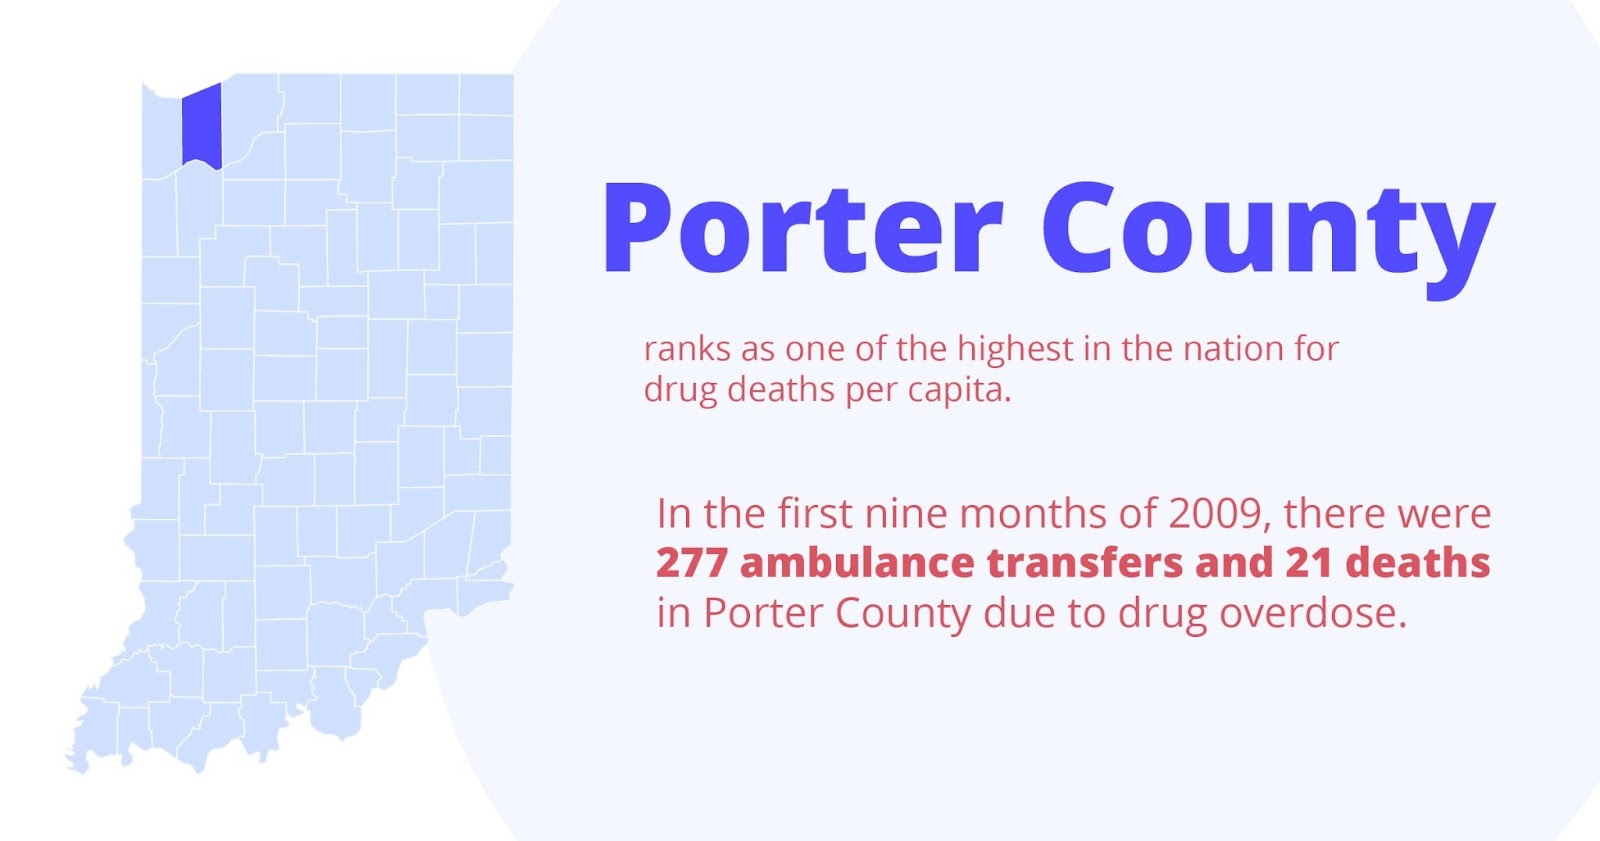 Porter county ranks as one of the highest in the nation for drug deaths per capita. In the first nine months of 2009, there were 277 ambulance transfers and 21 deaths in porter county due to drug overdose.